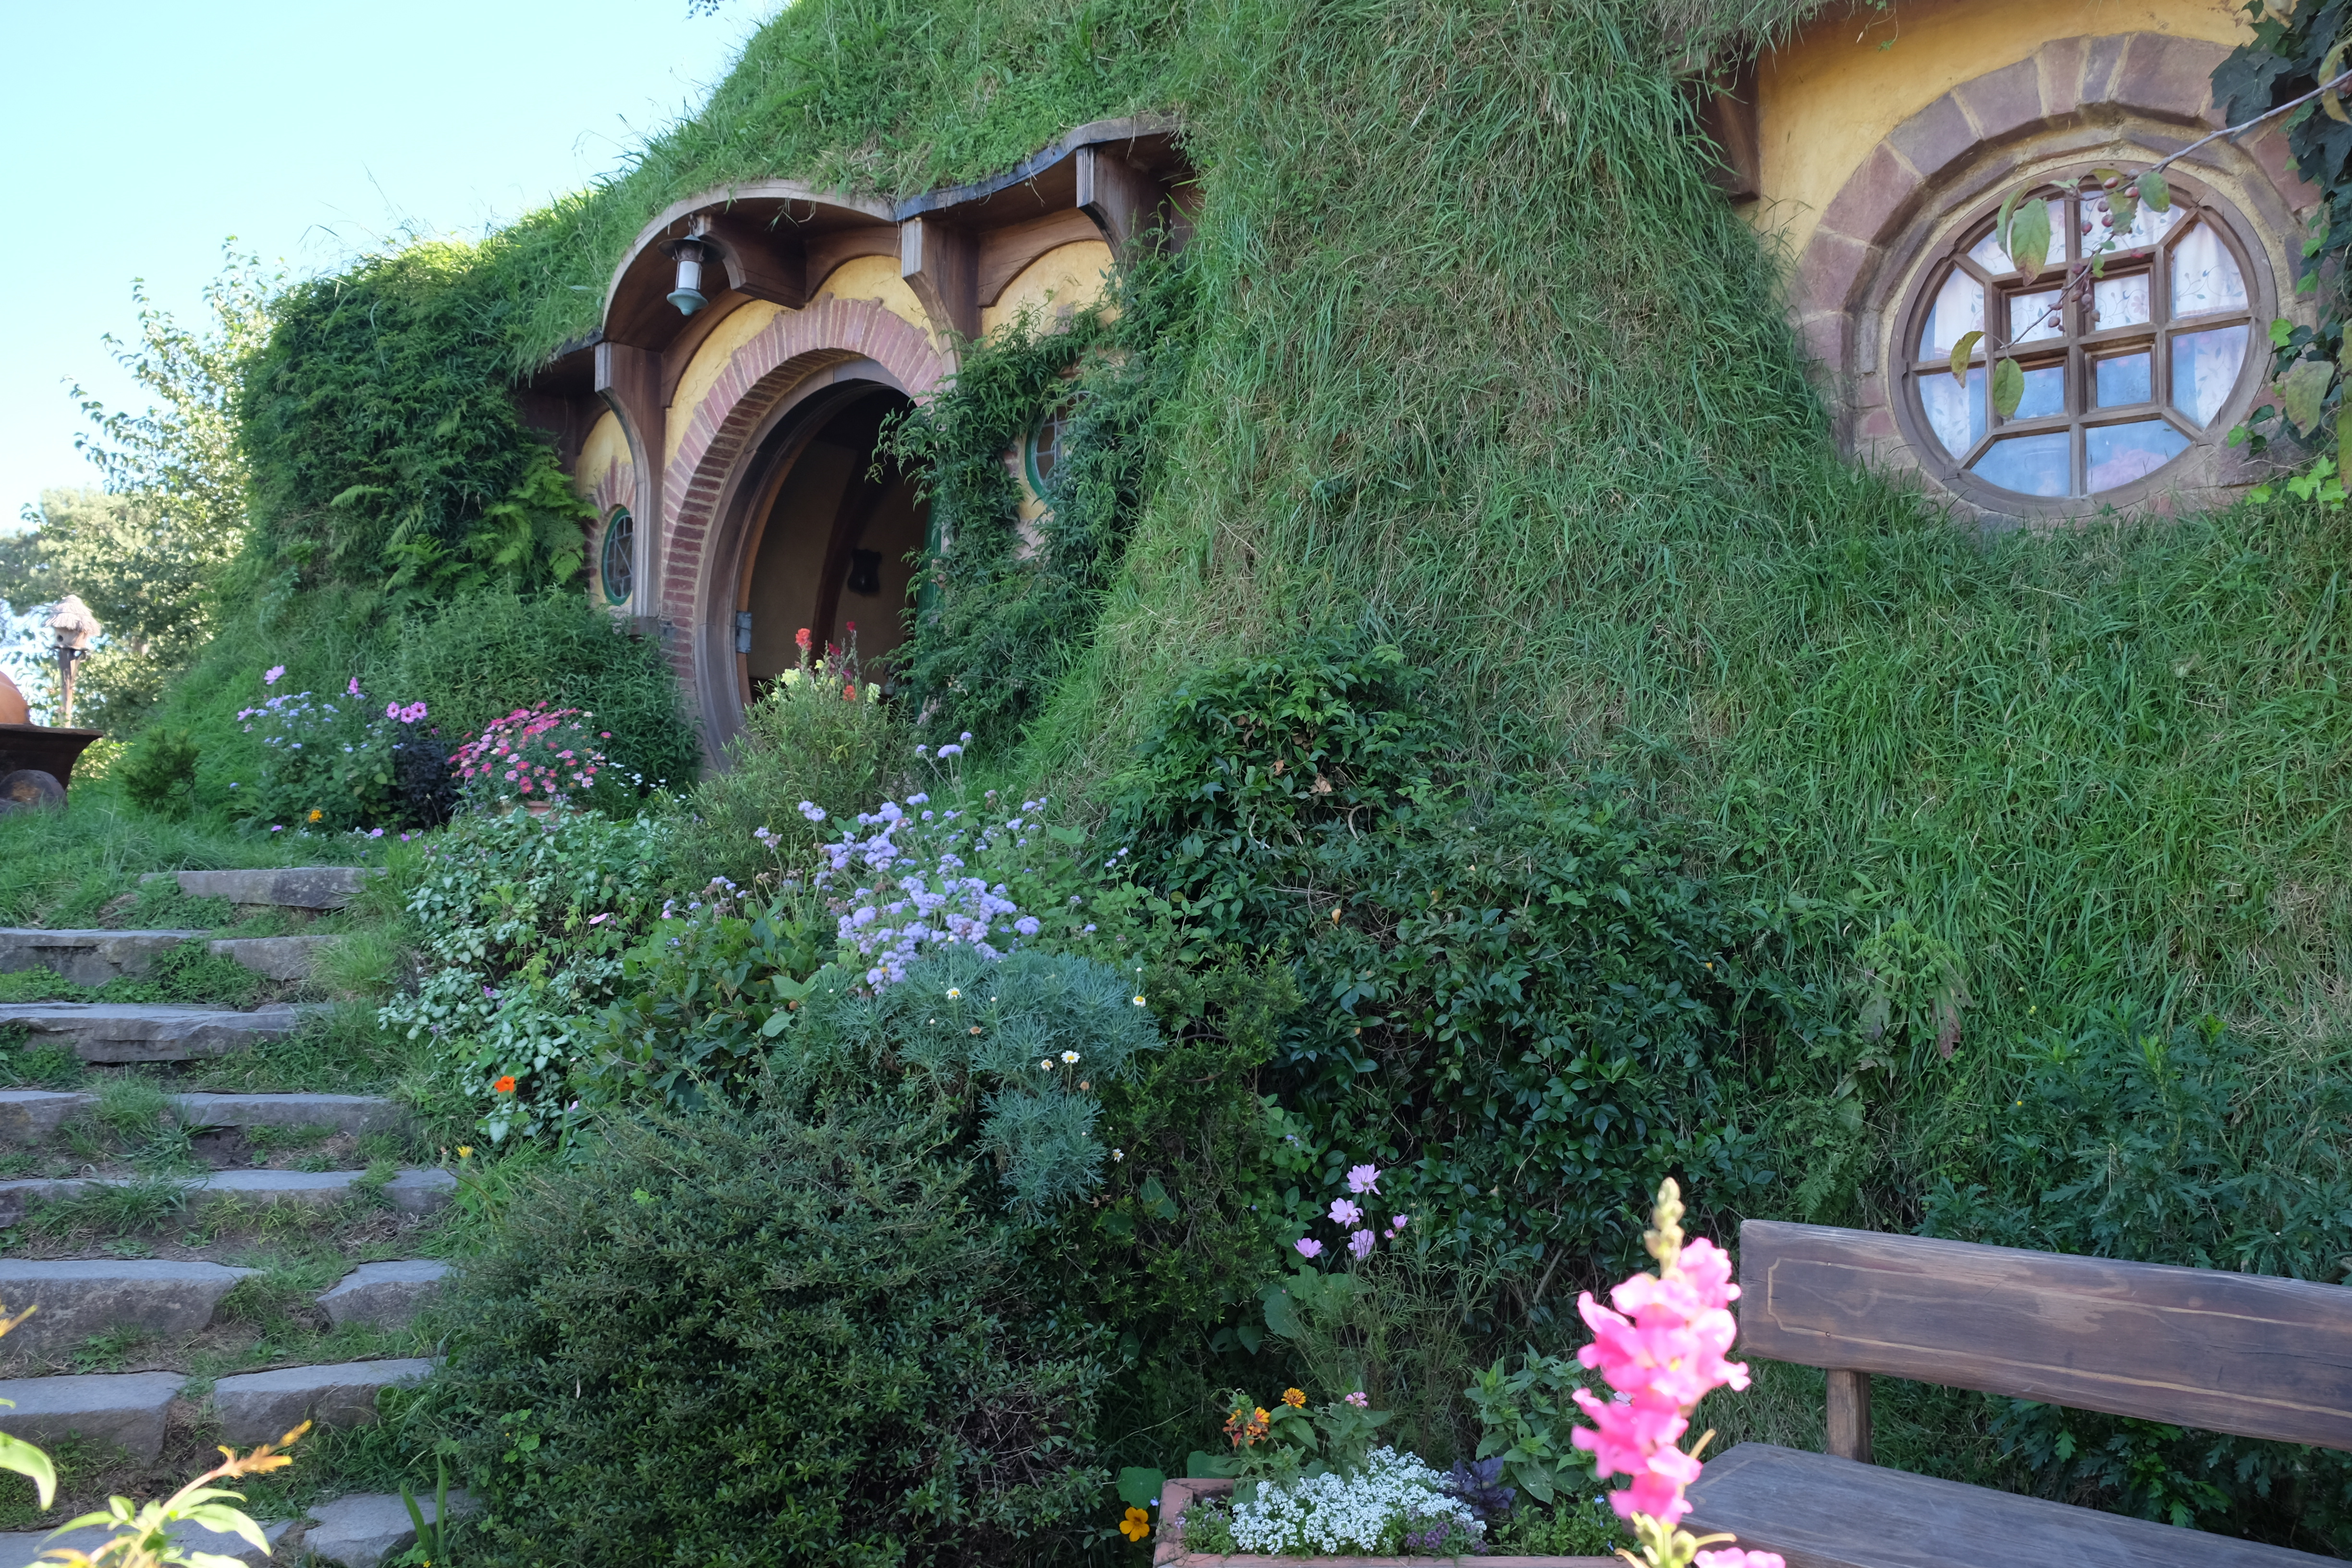 Bilbo Baggins' house at Bag End in Hobbiton. - JIM BYERS PHOTO